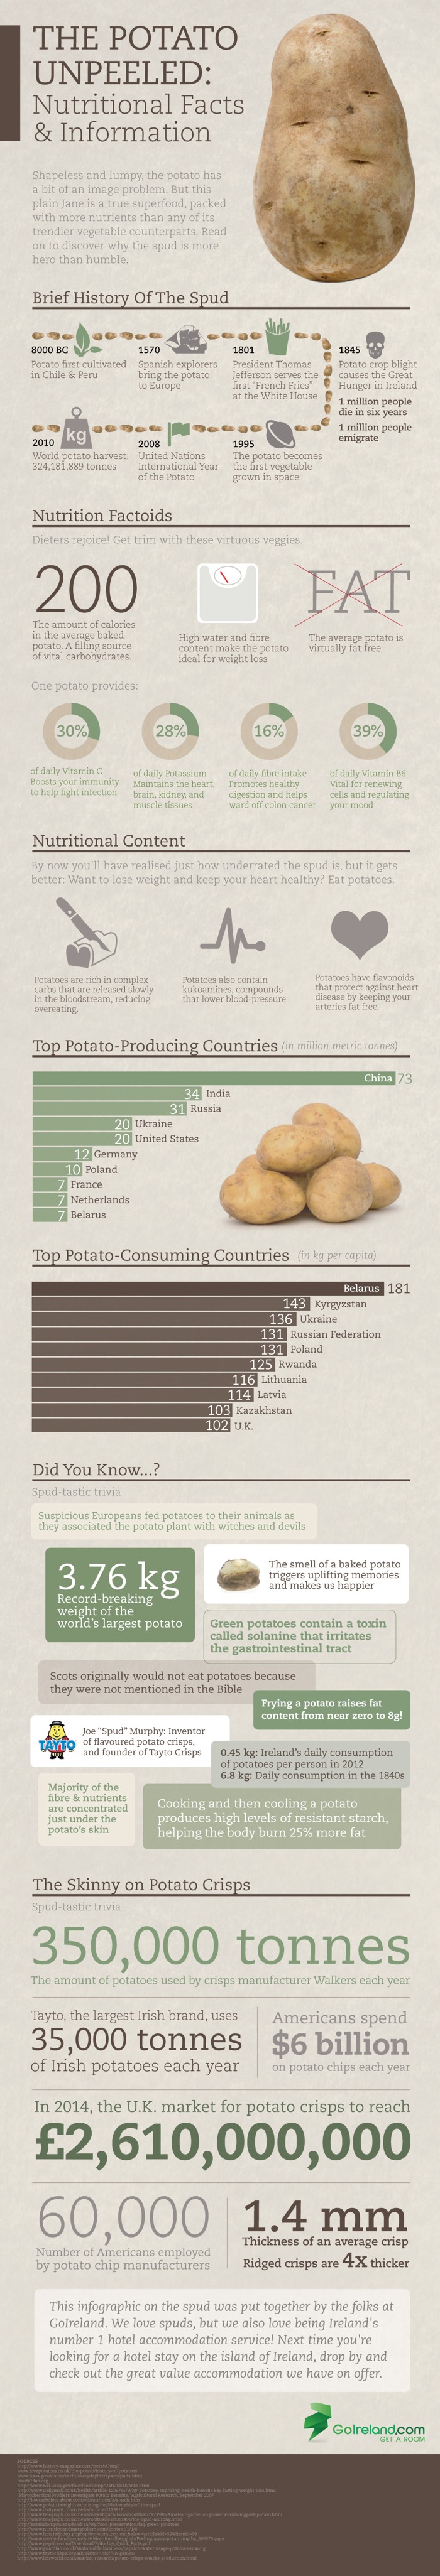 The Potato Unpeeled: Nutritional Facts & Information